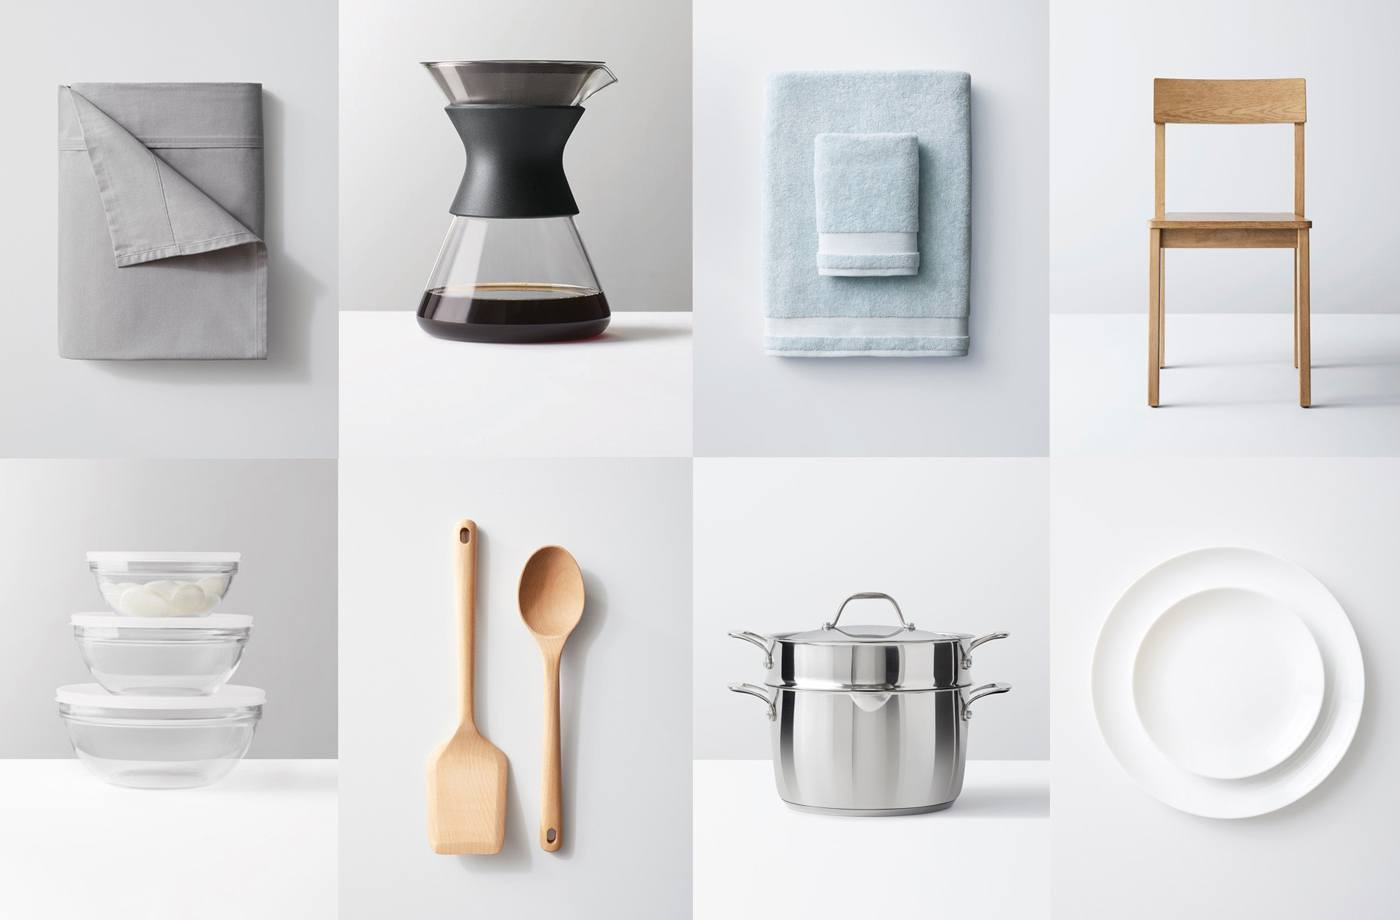 Target To Launch Home Brand Made By Design Well Good